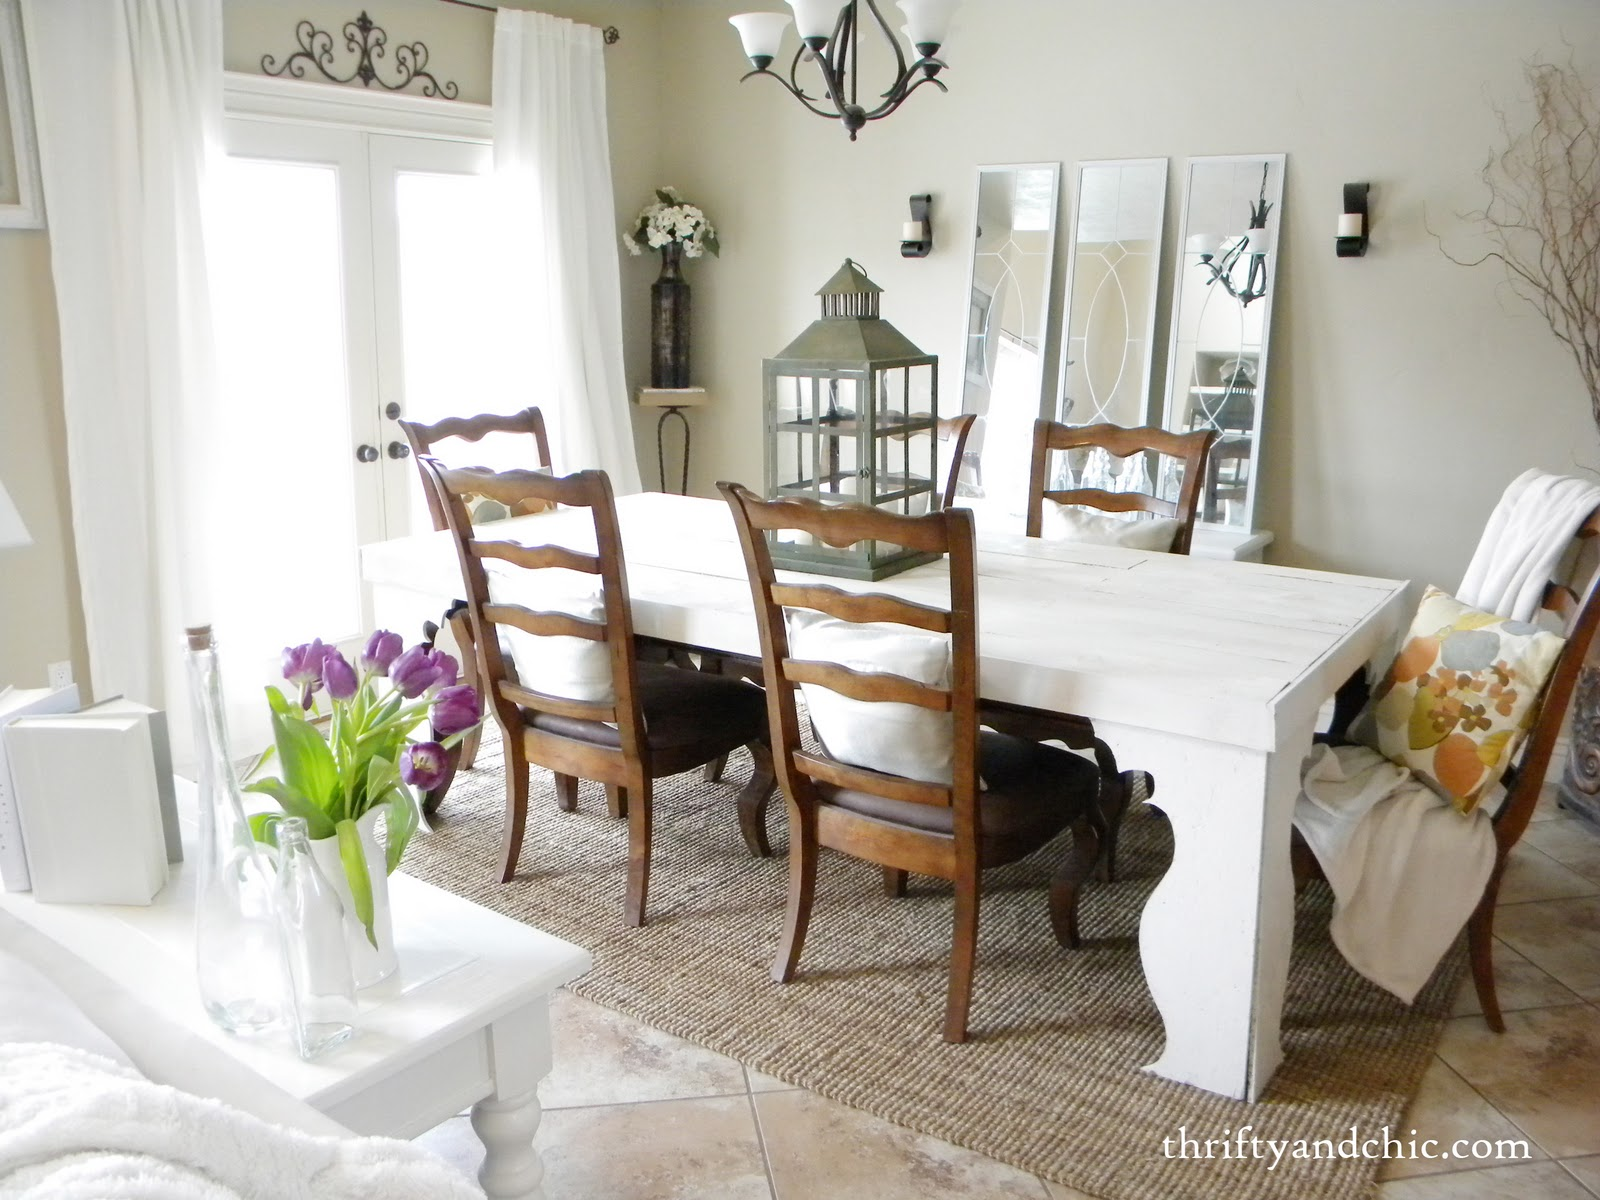 Thrifty and chic diy projects and home decor for Farmhouse dining room ideas